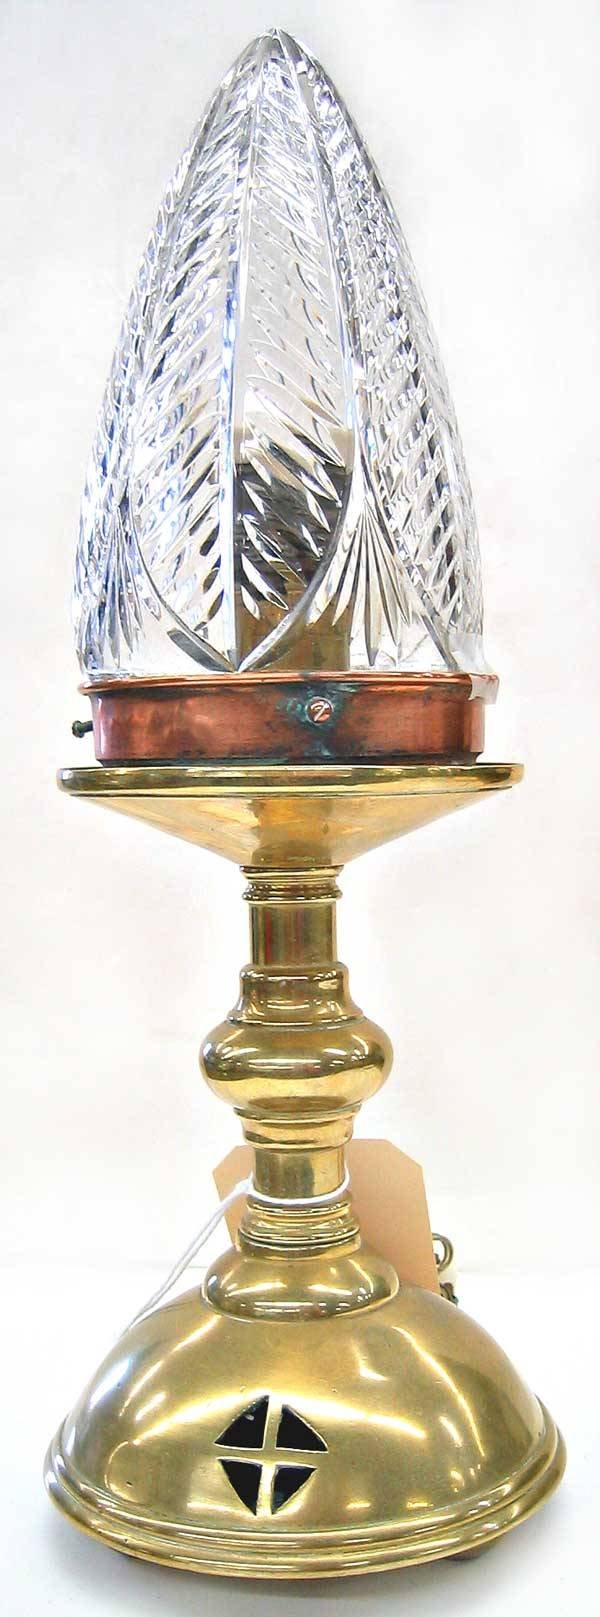 7972: Brass table lamp